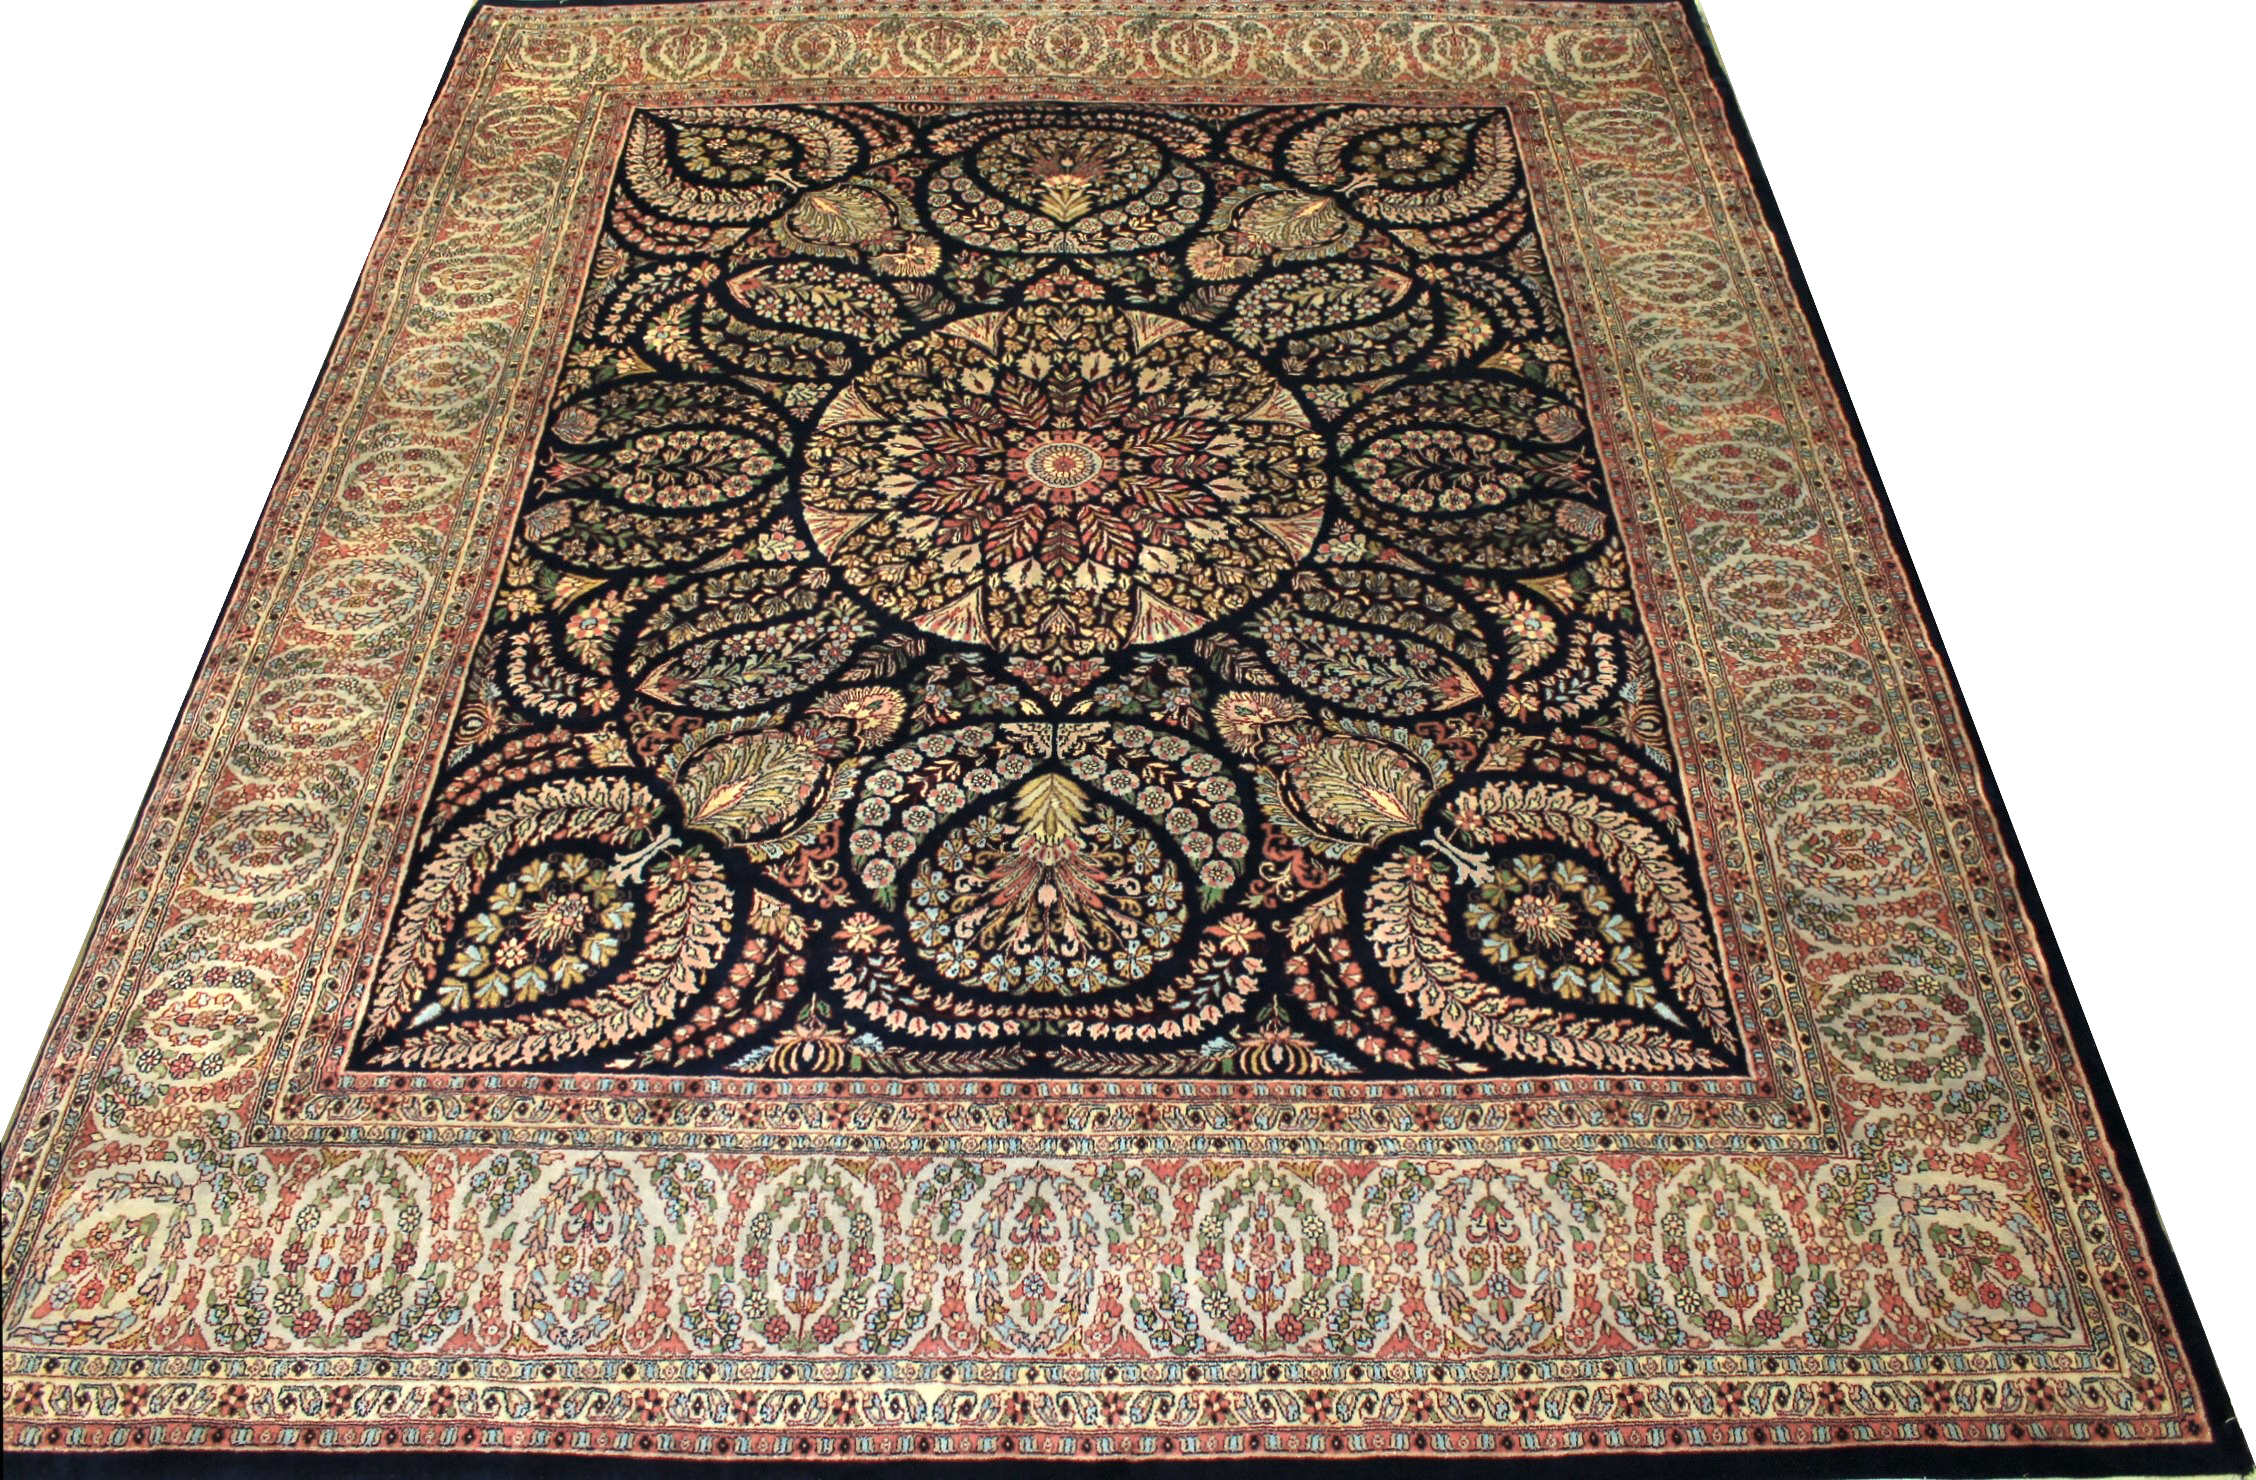 8x10 Traditional Hand Knotted Wool Area Rug - MR0982